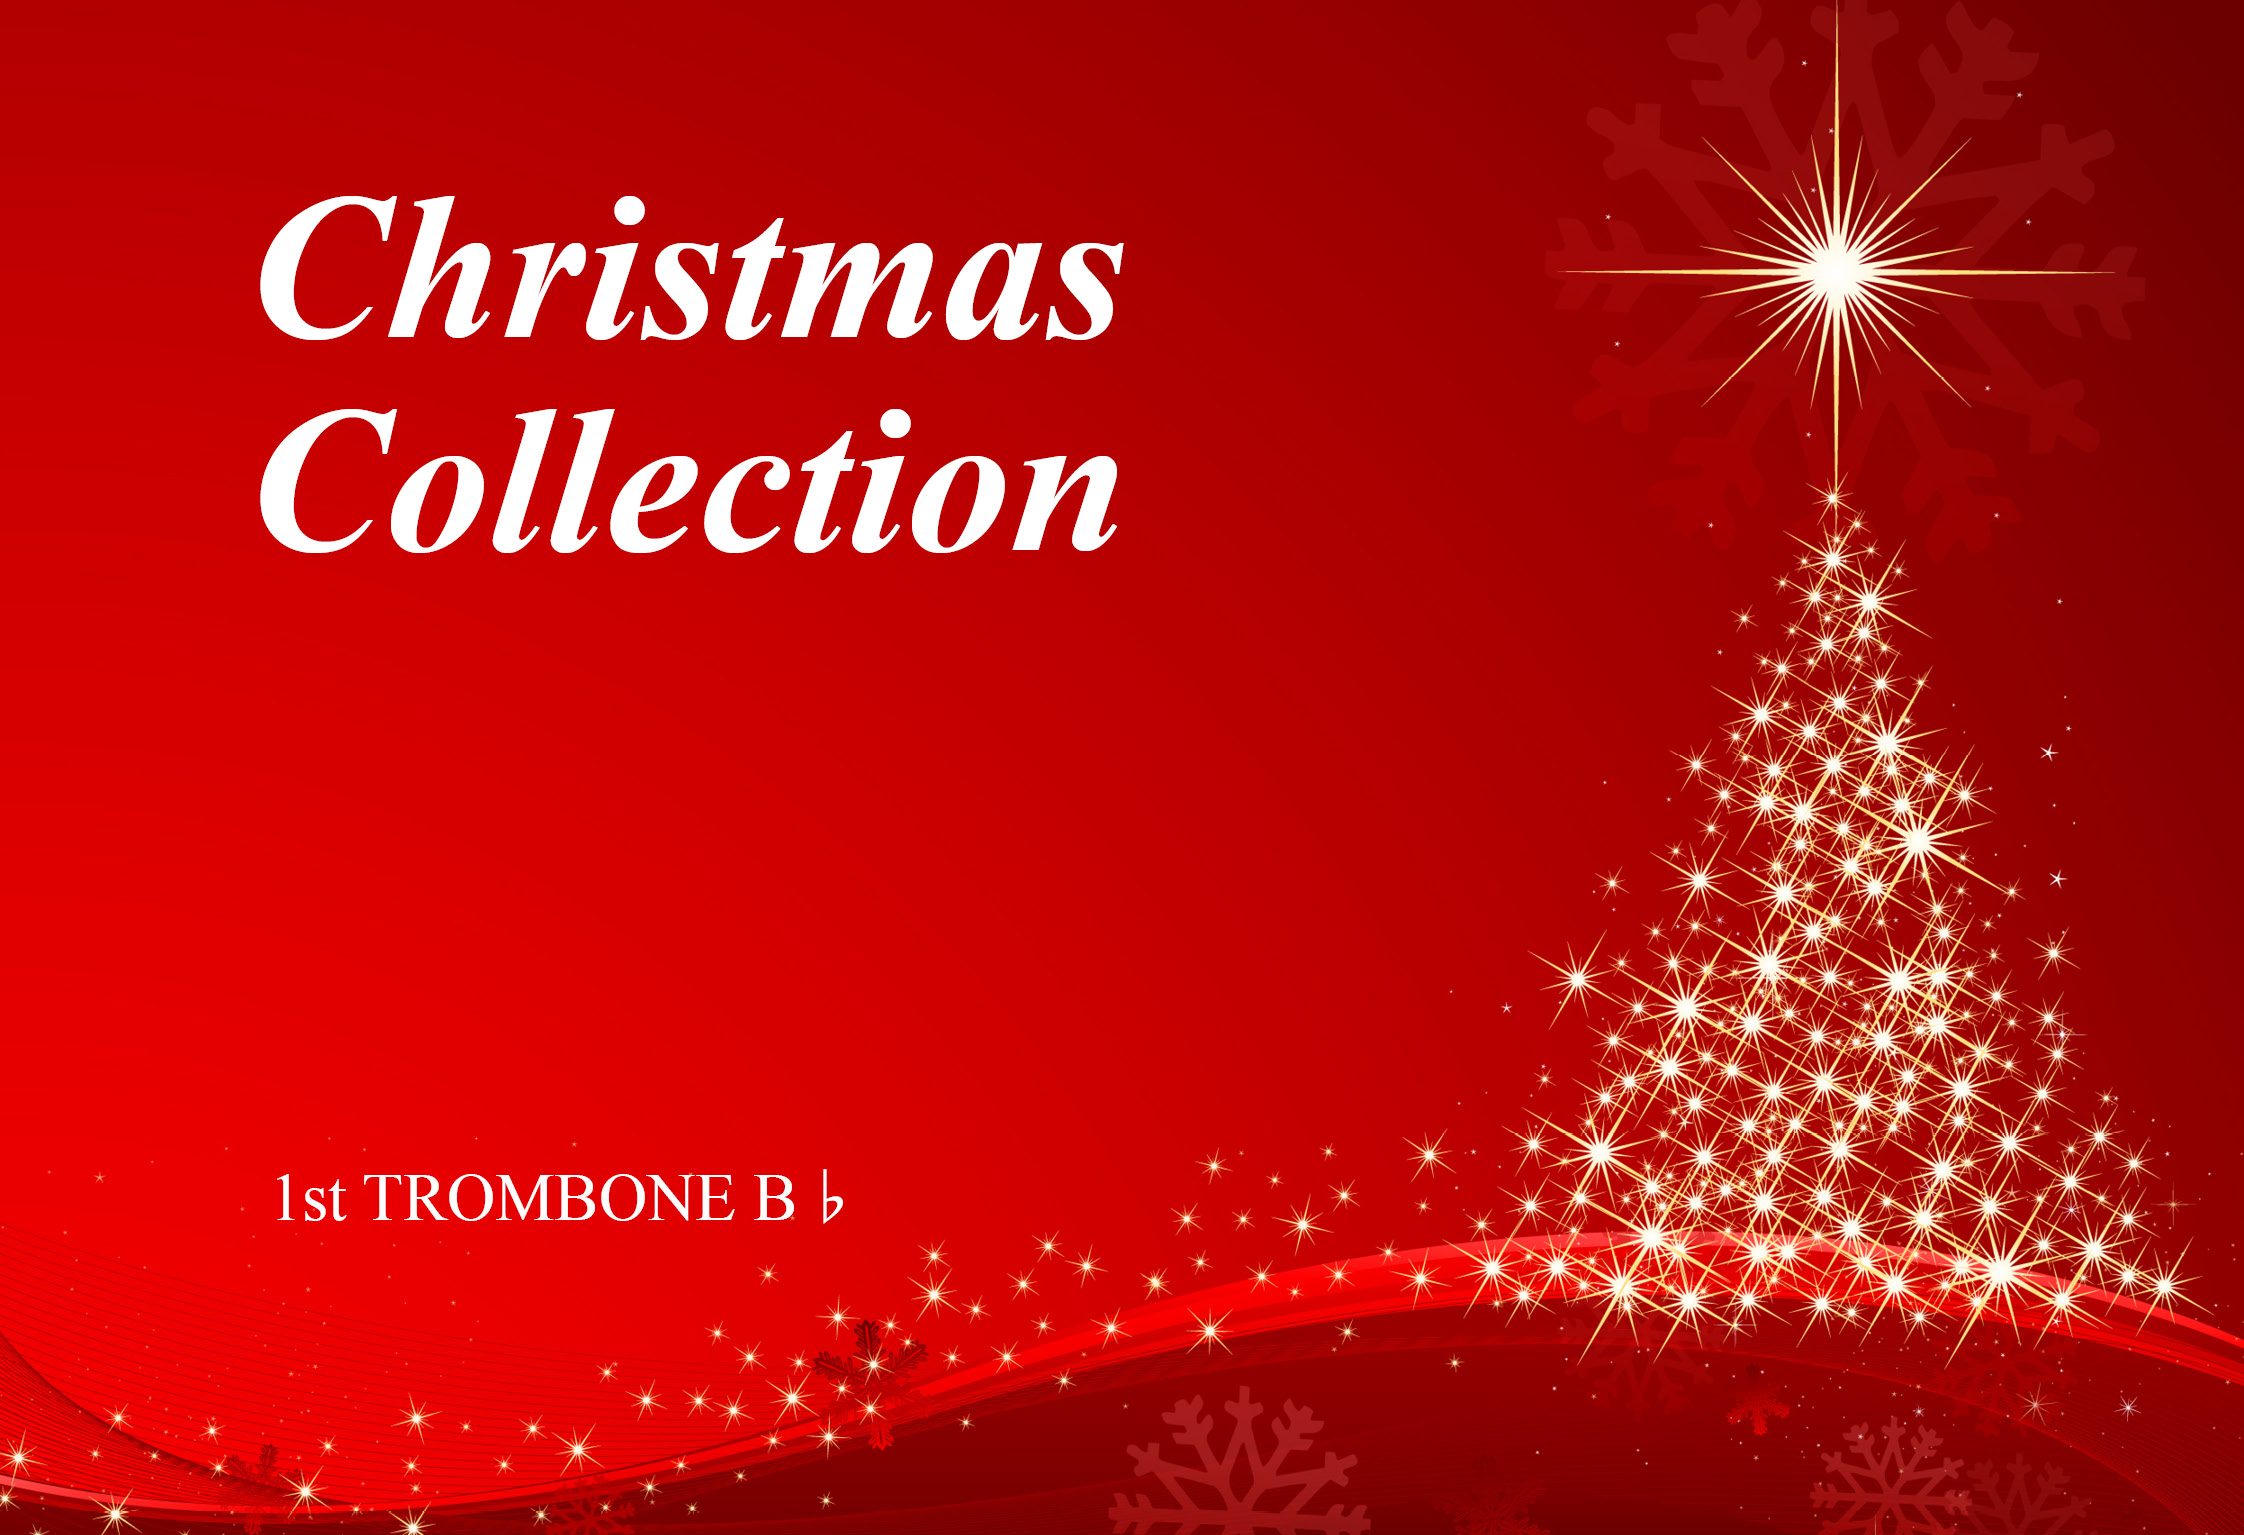 Christmas Collection - 1st Trombone Bb - Large Print A4